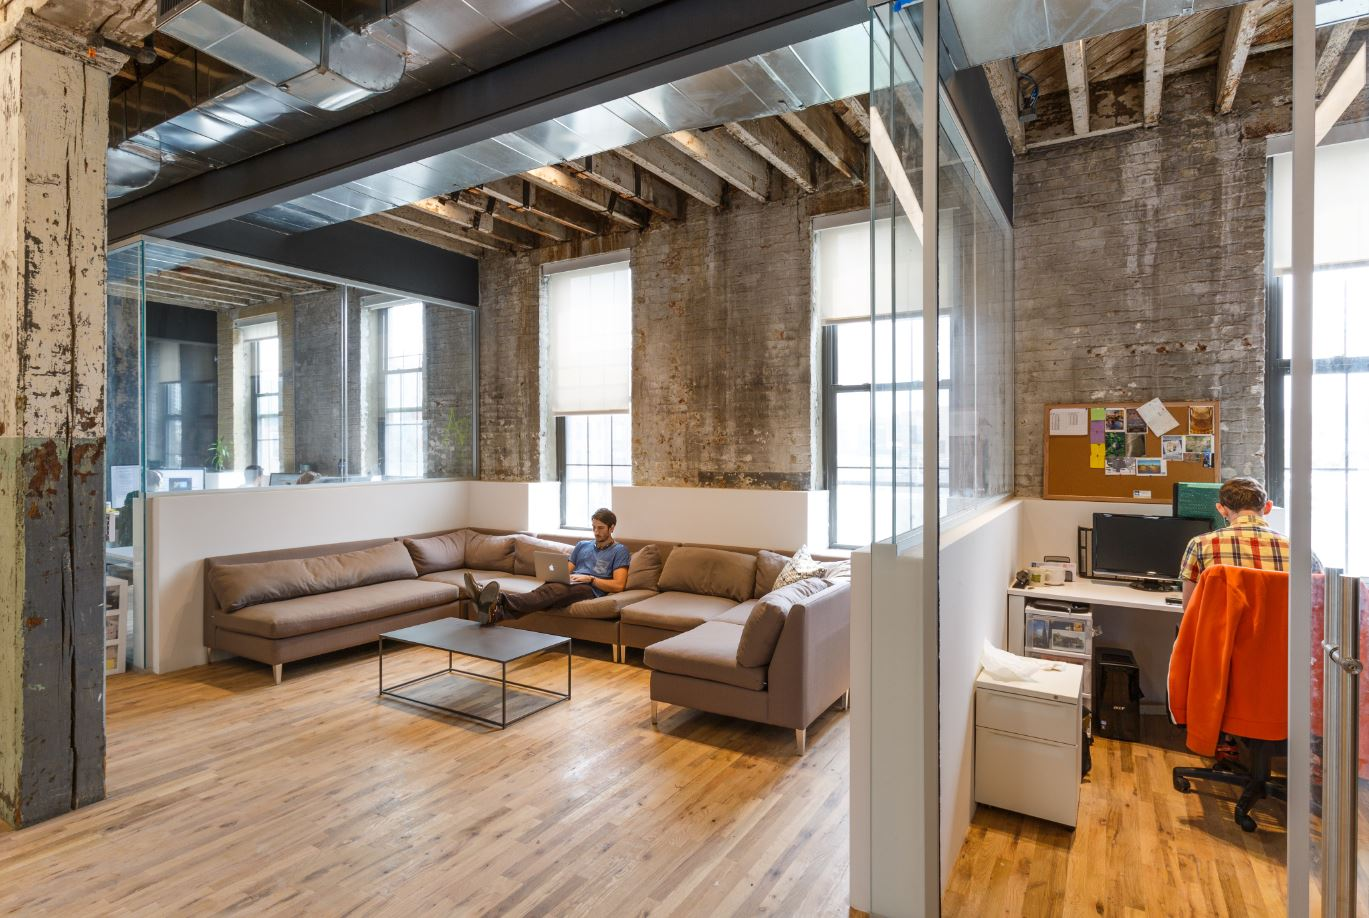 A Quick Look Inside Coworkrs Brooklyn Coworking Space  Officelovin